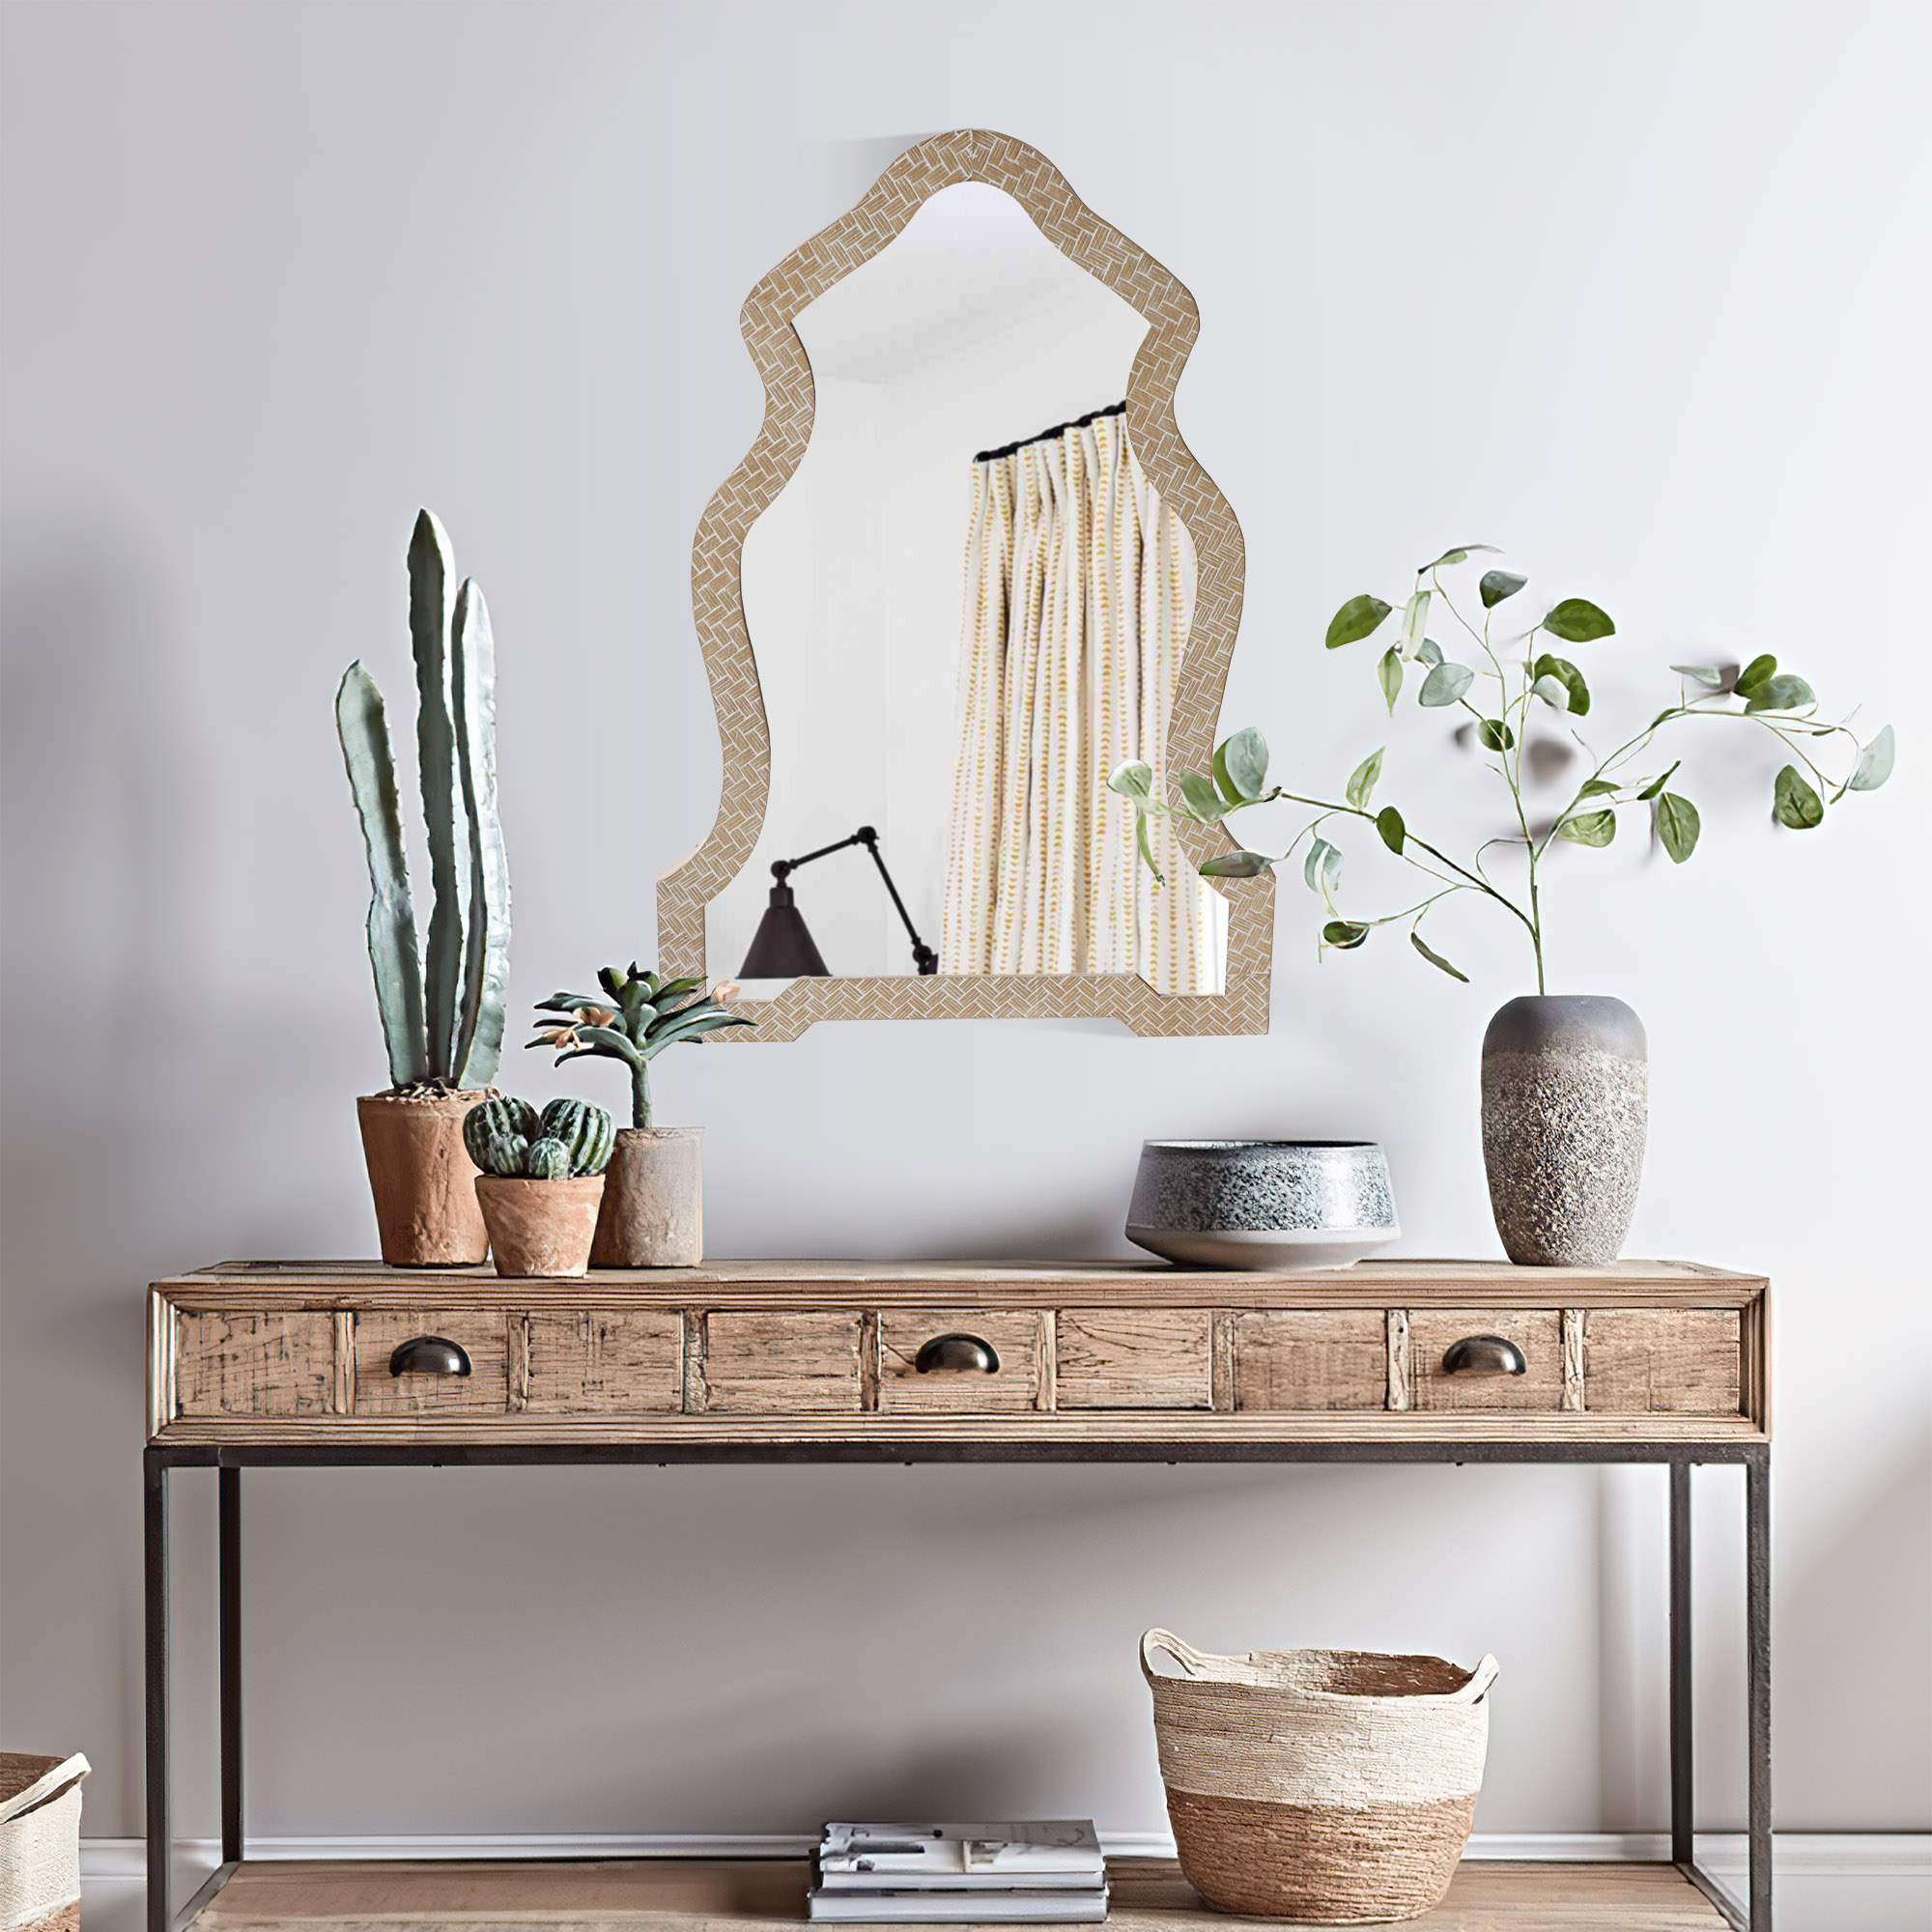 Scalloped Top Wooden Framed Wall Mirror Dunawest With Geometric Texture - Sand Brown 37 x 26 x 1 Inch